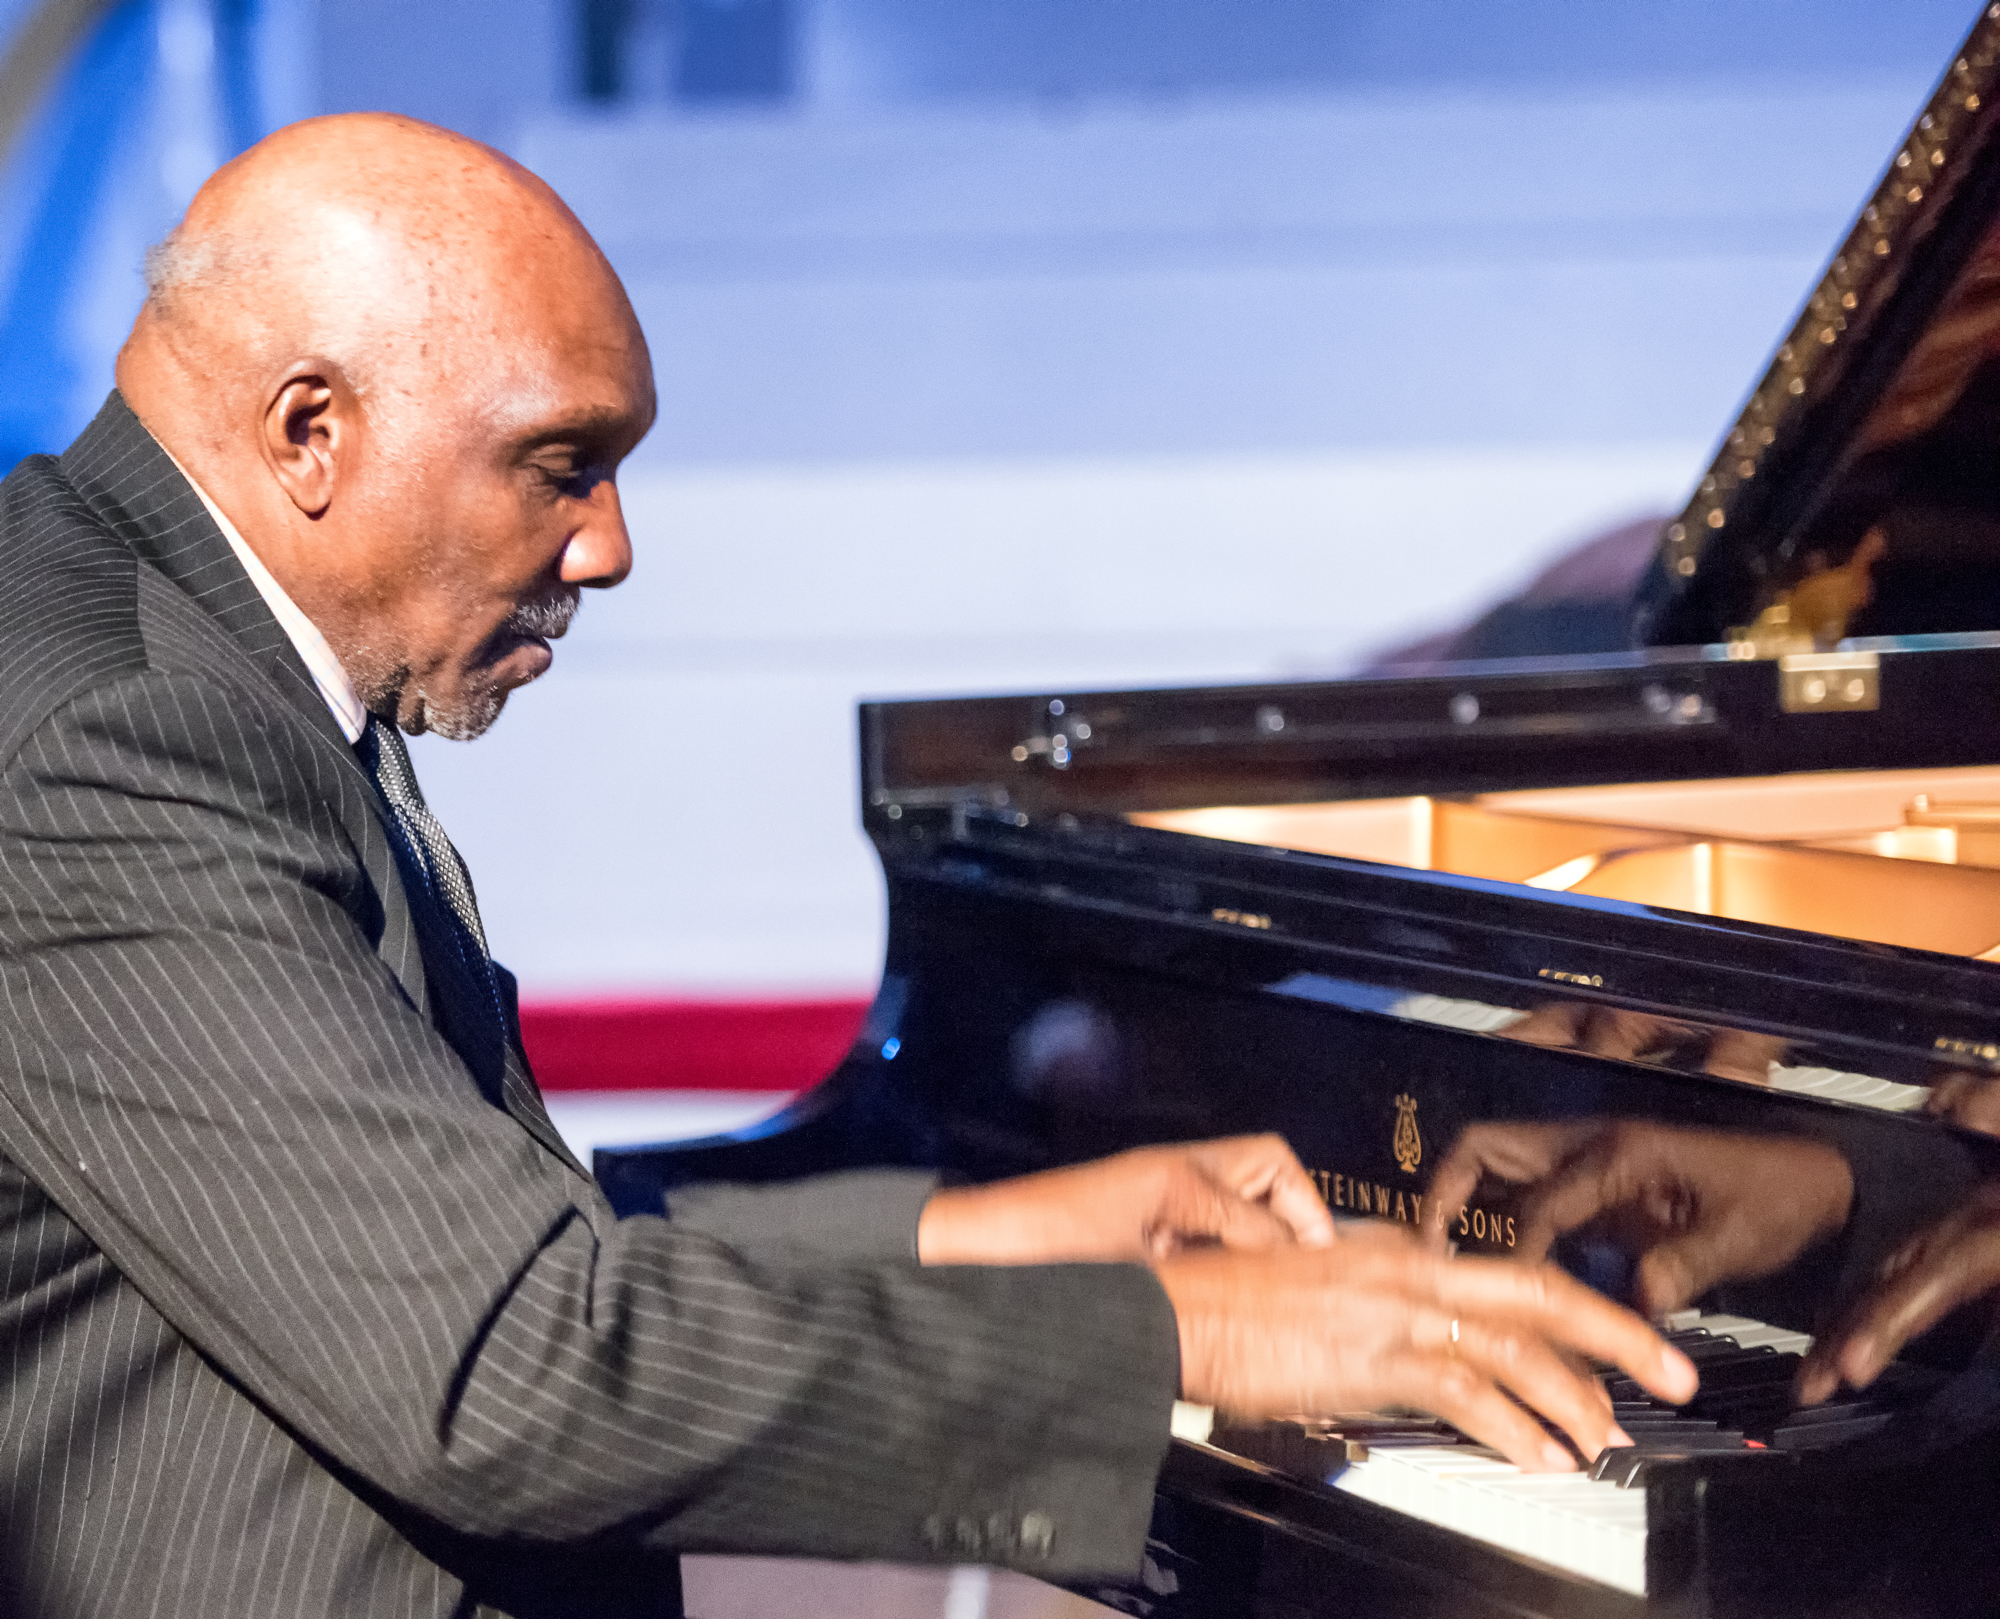 Harold Mabern at Jazz Legends Play for Disability Pride at Nyc Winter Jazzfest 2015